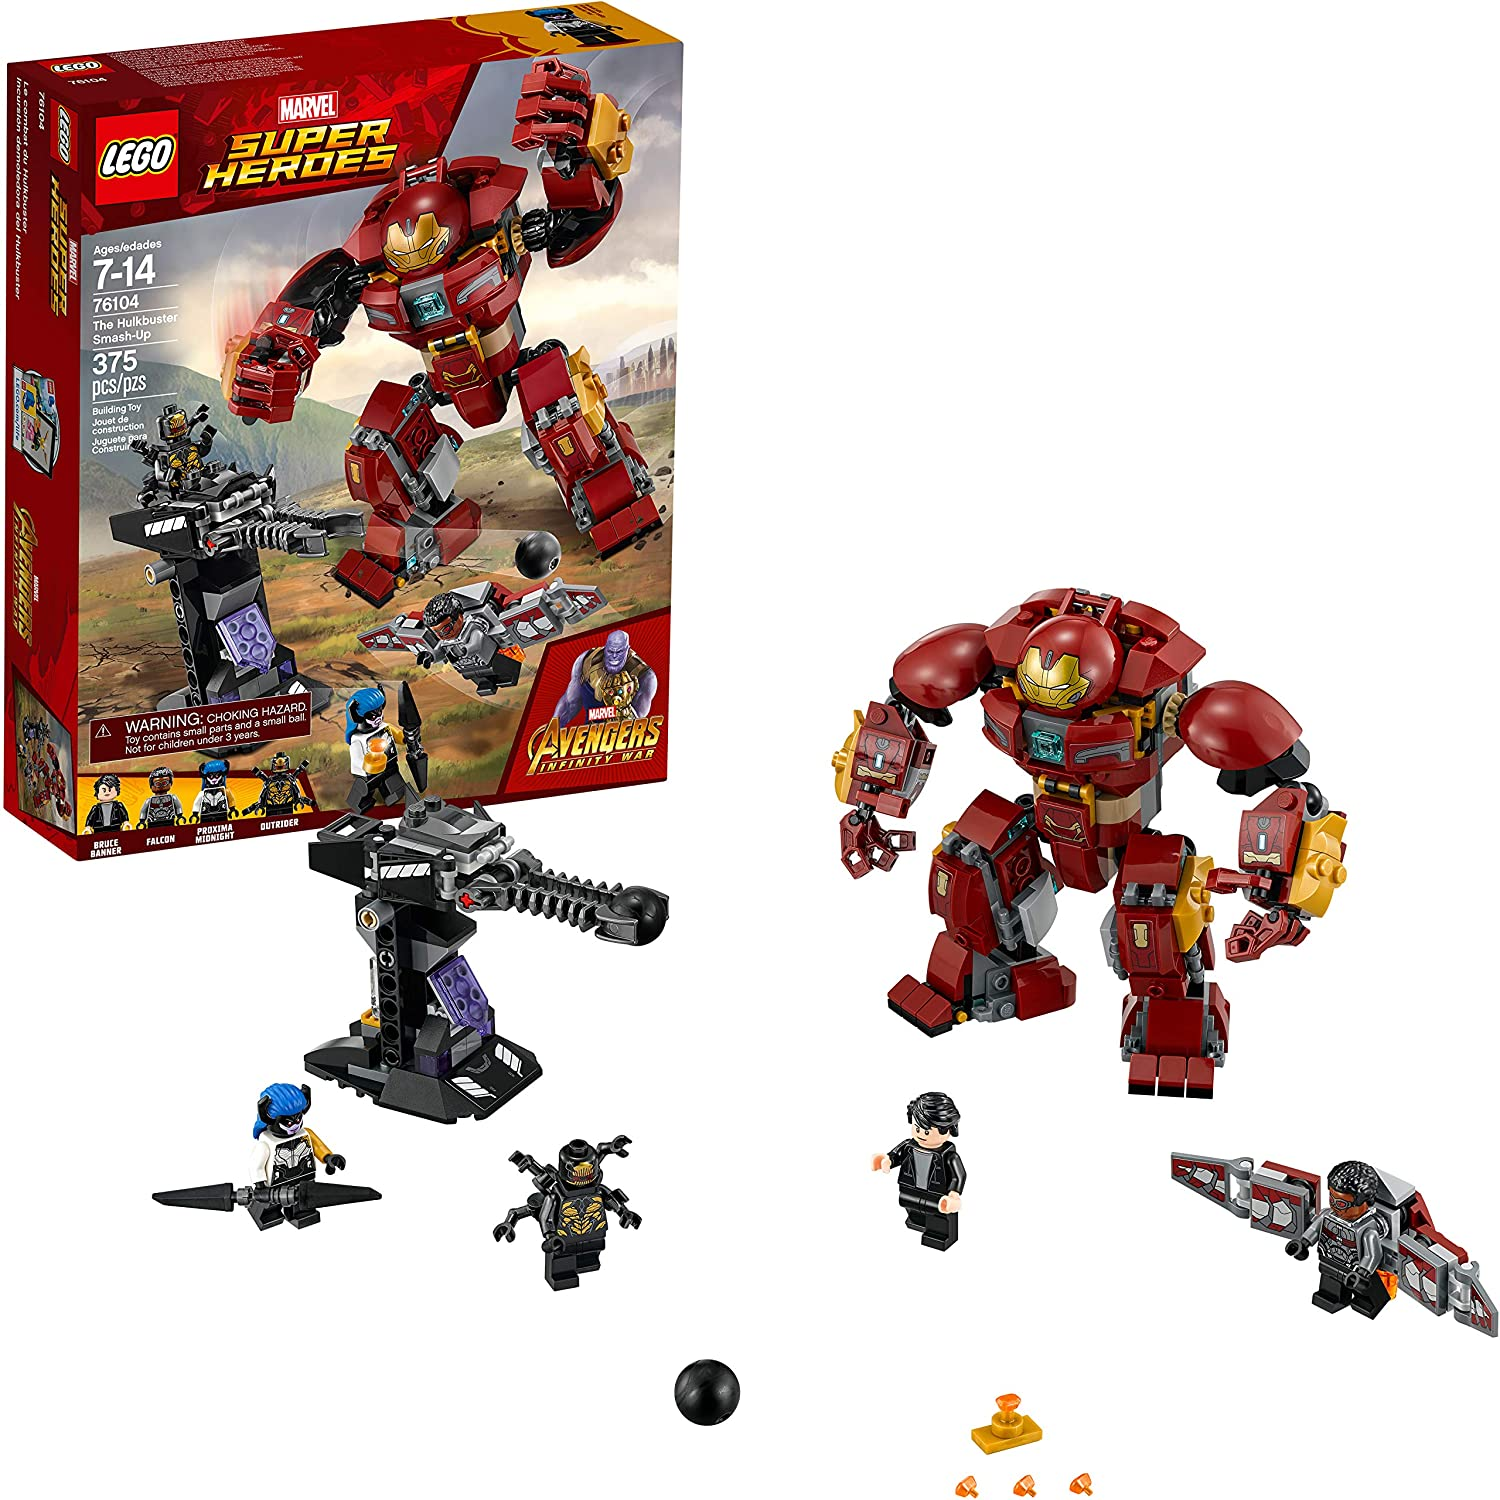 LEGO Marvel Super Heroes Avengers  Infinity War The Hulkbuster Smash-Up 76104 Building Kit features Proxima Midnight  Outrider  and Bruce Banner figures   375 Pieces